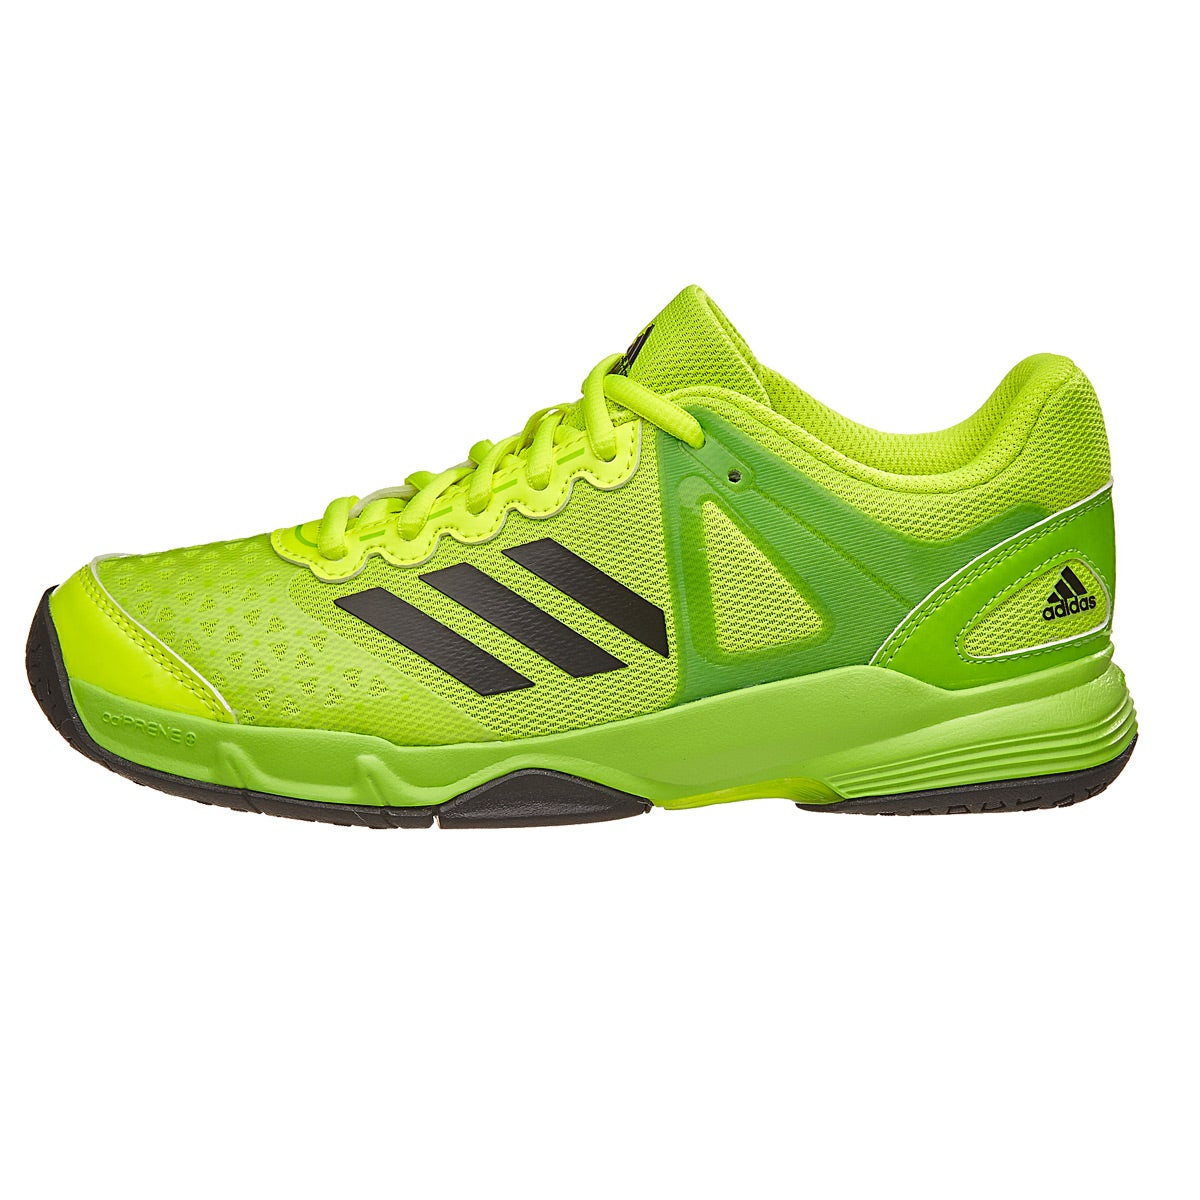 Neon Yellow Adidas Shoes